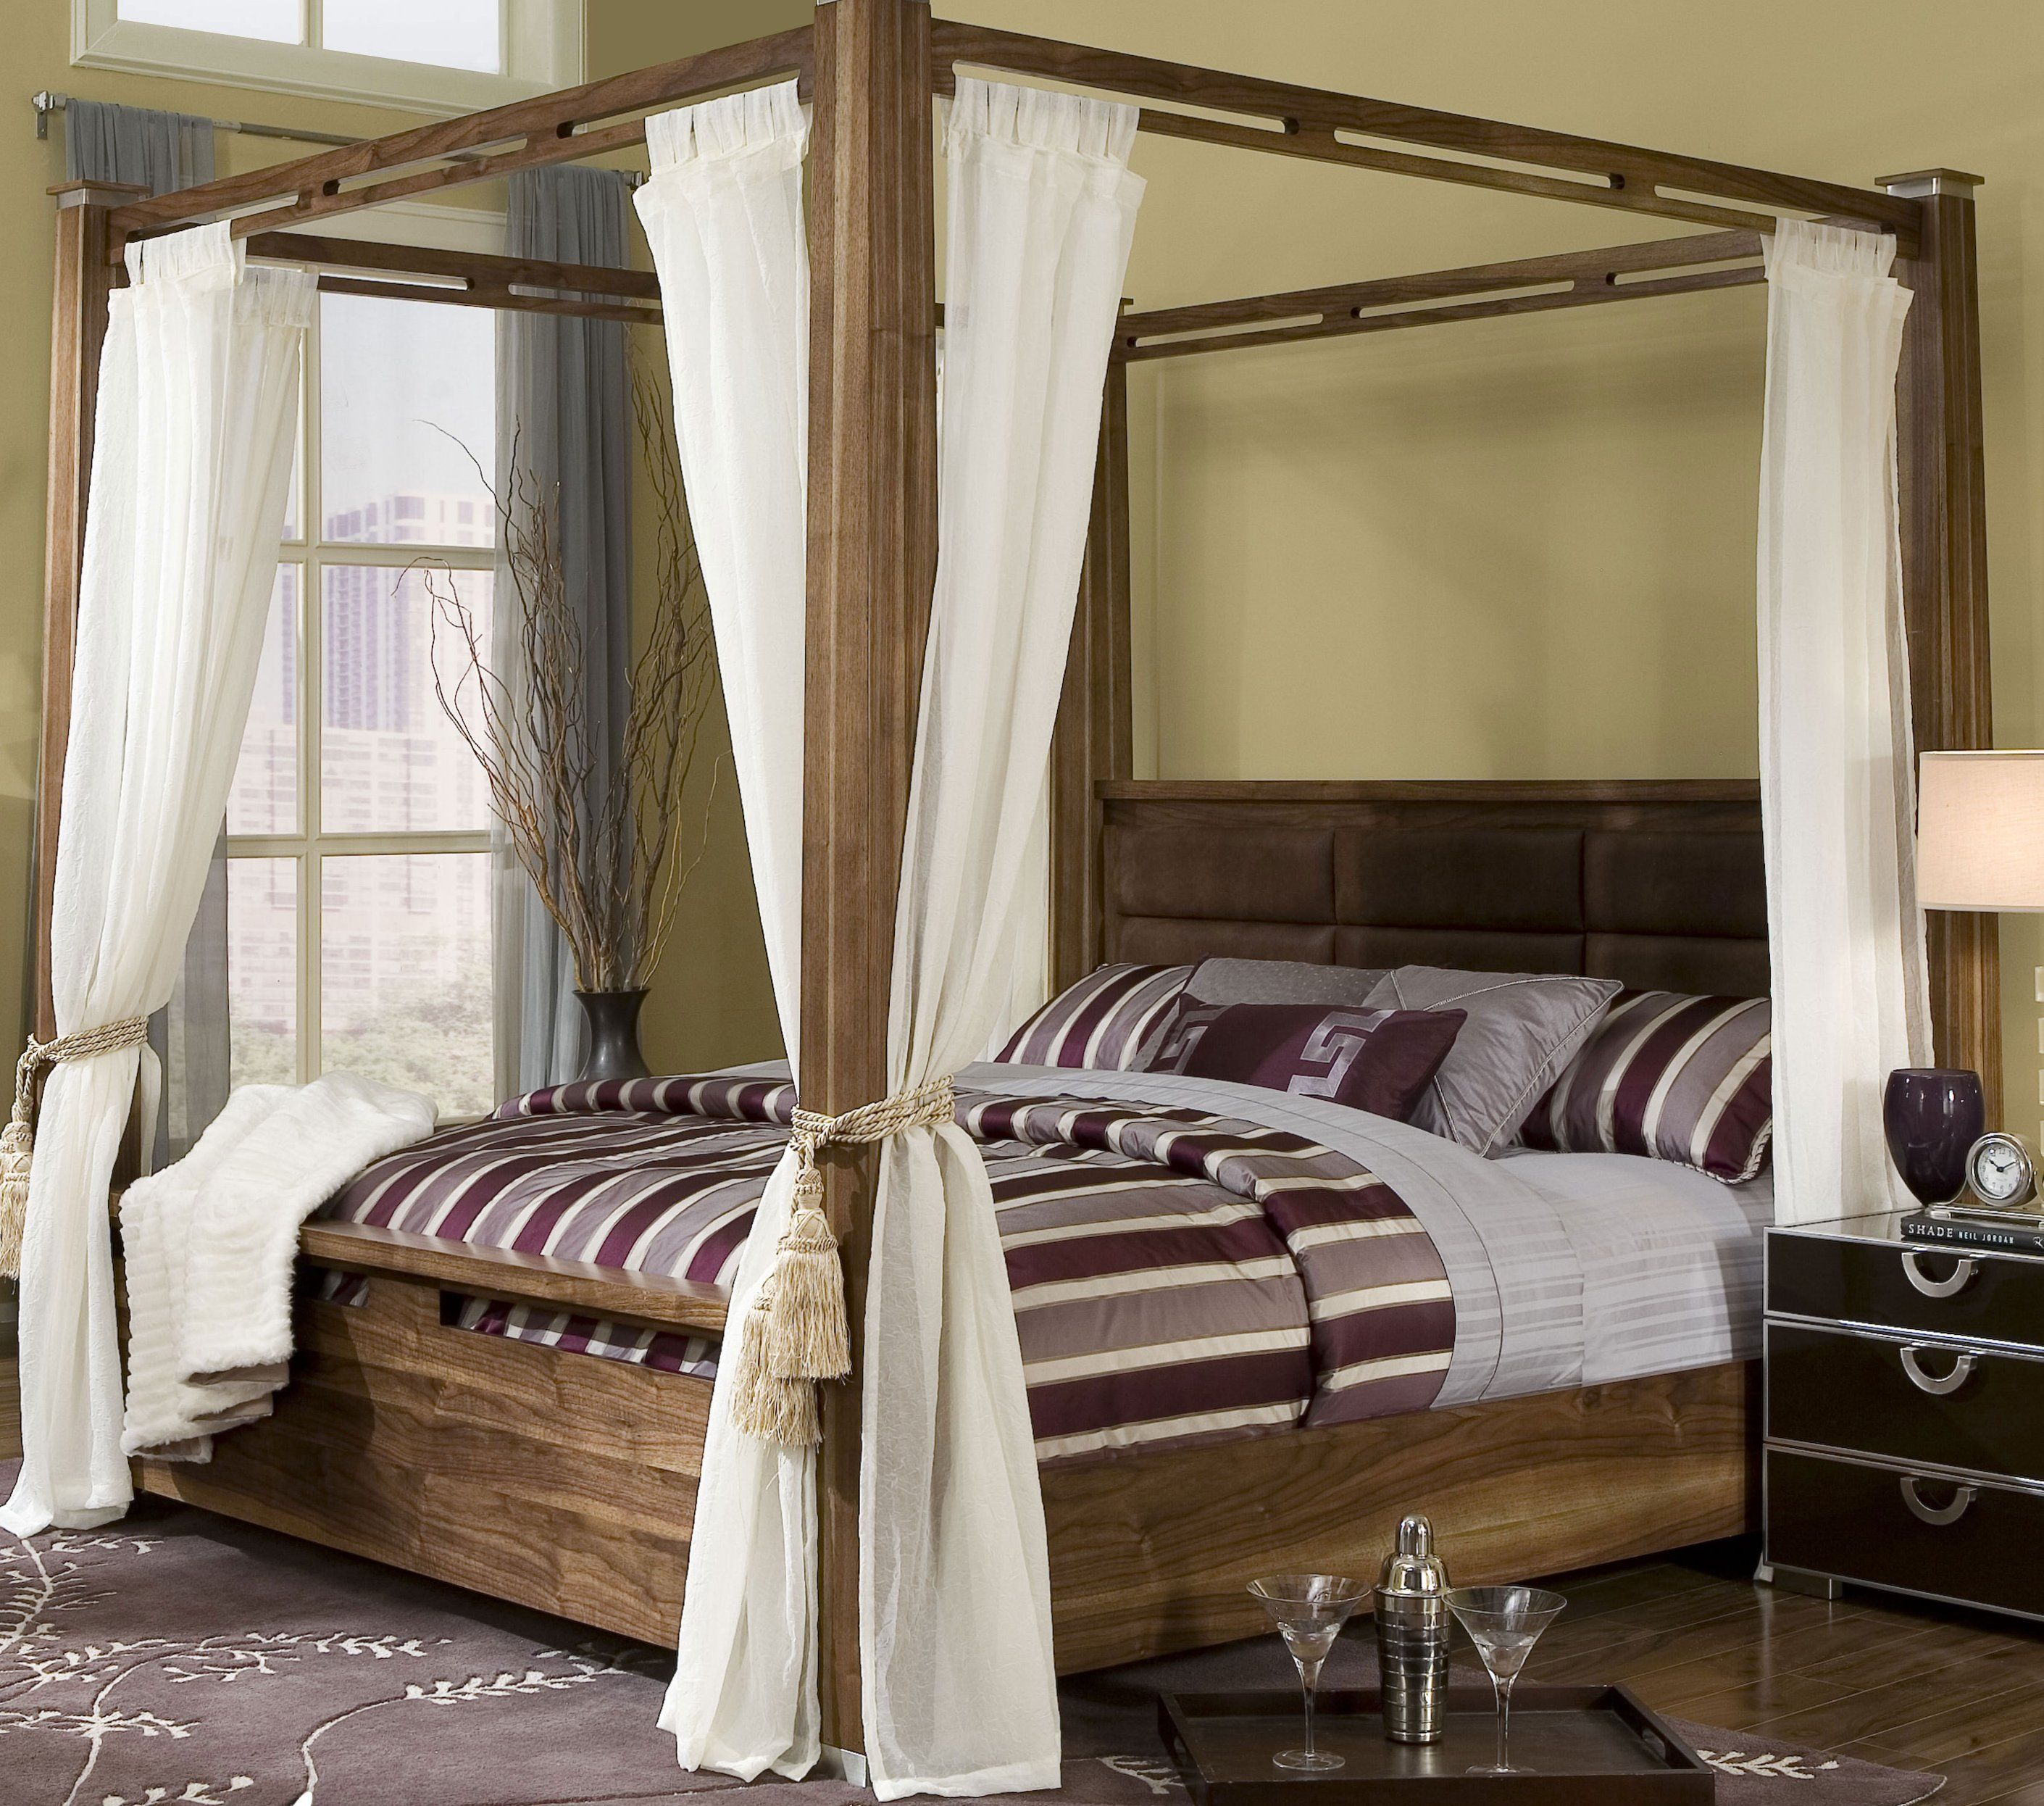 Comfortable Bed With Canopy Bed Design Canopy Bed Curtains